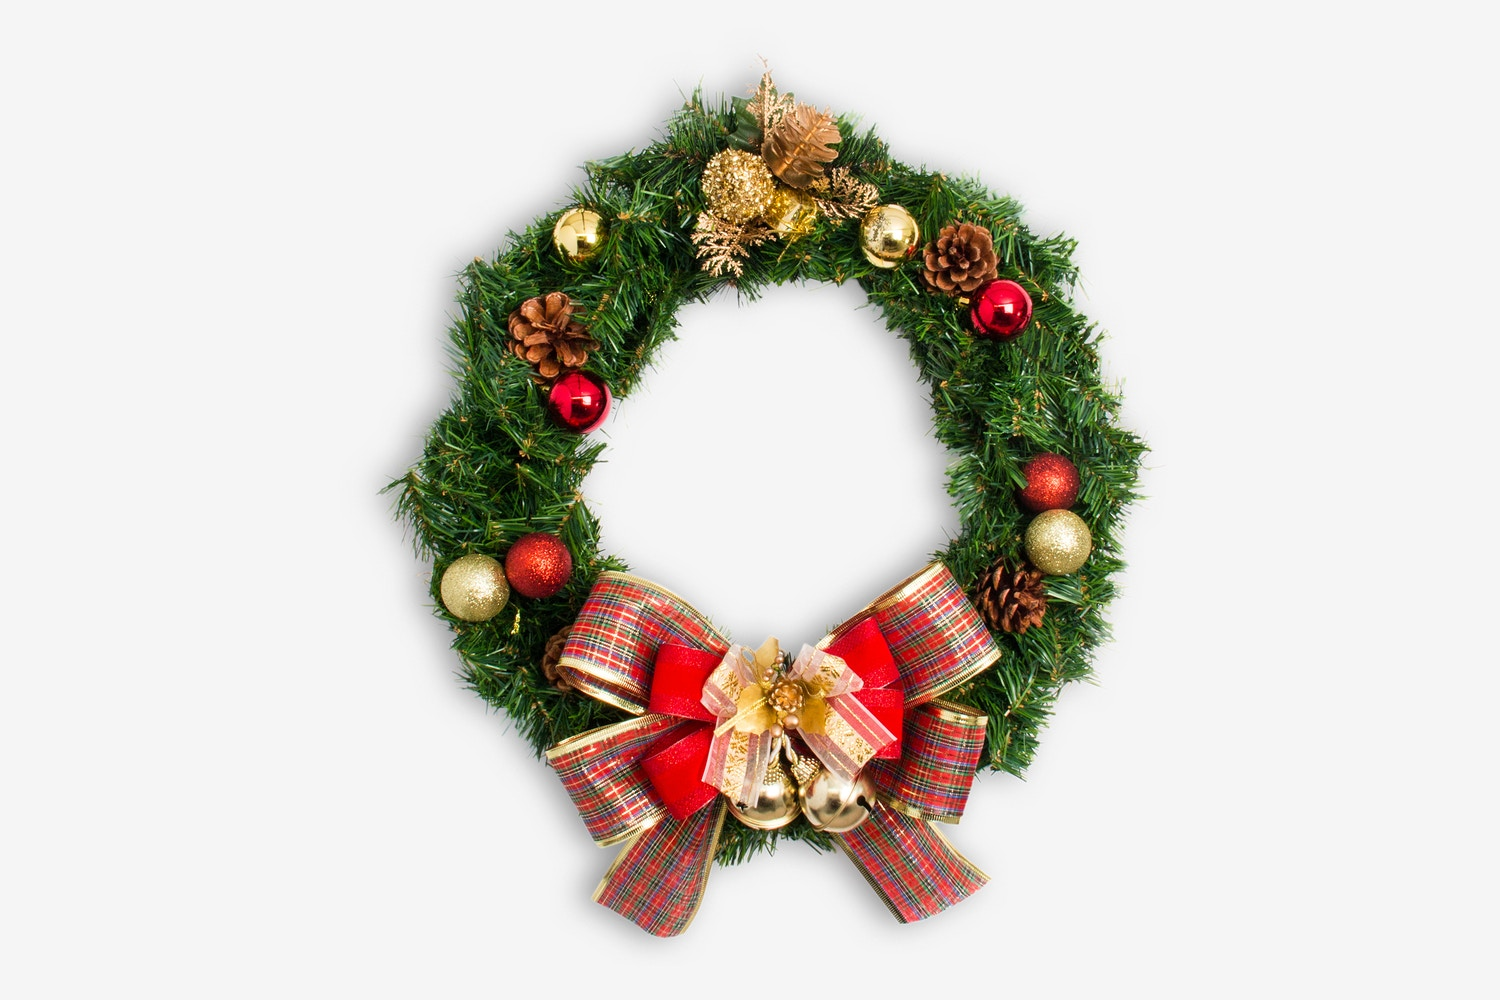 Christmas Wreath Isolate 01 by Original Mockups on Original Mockups